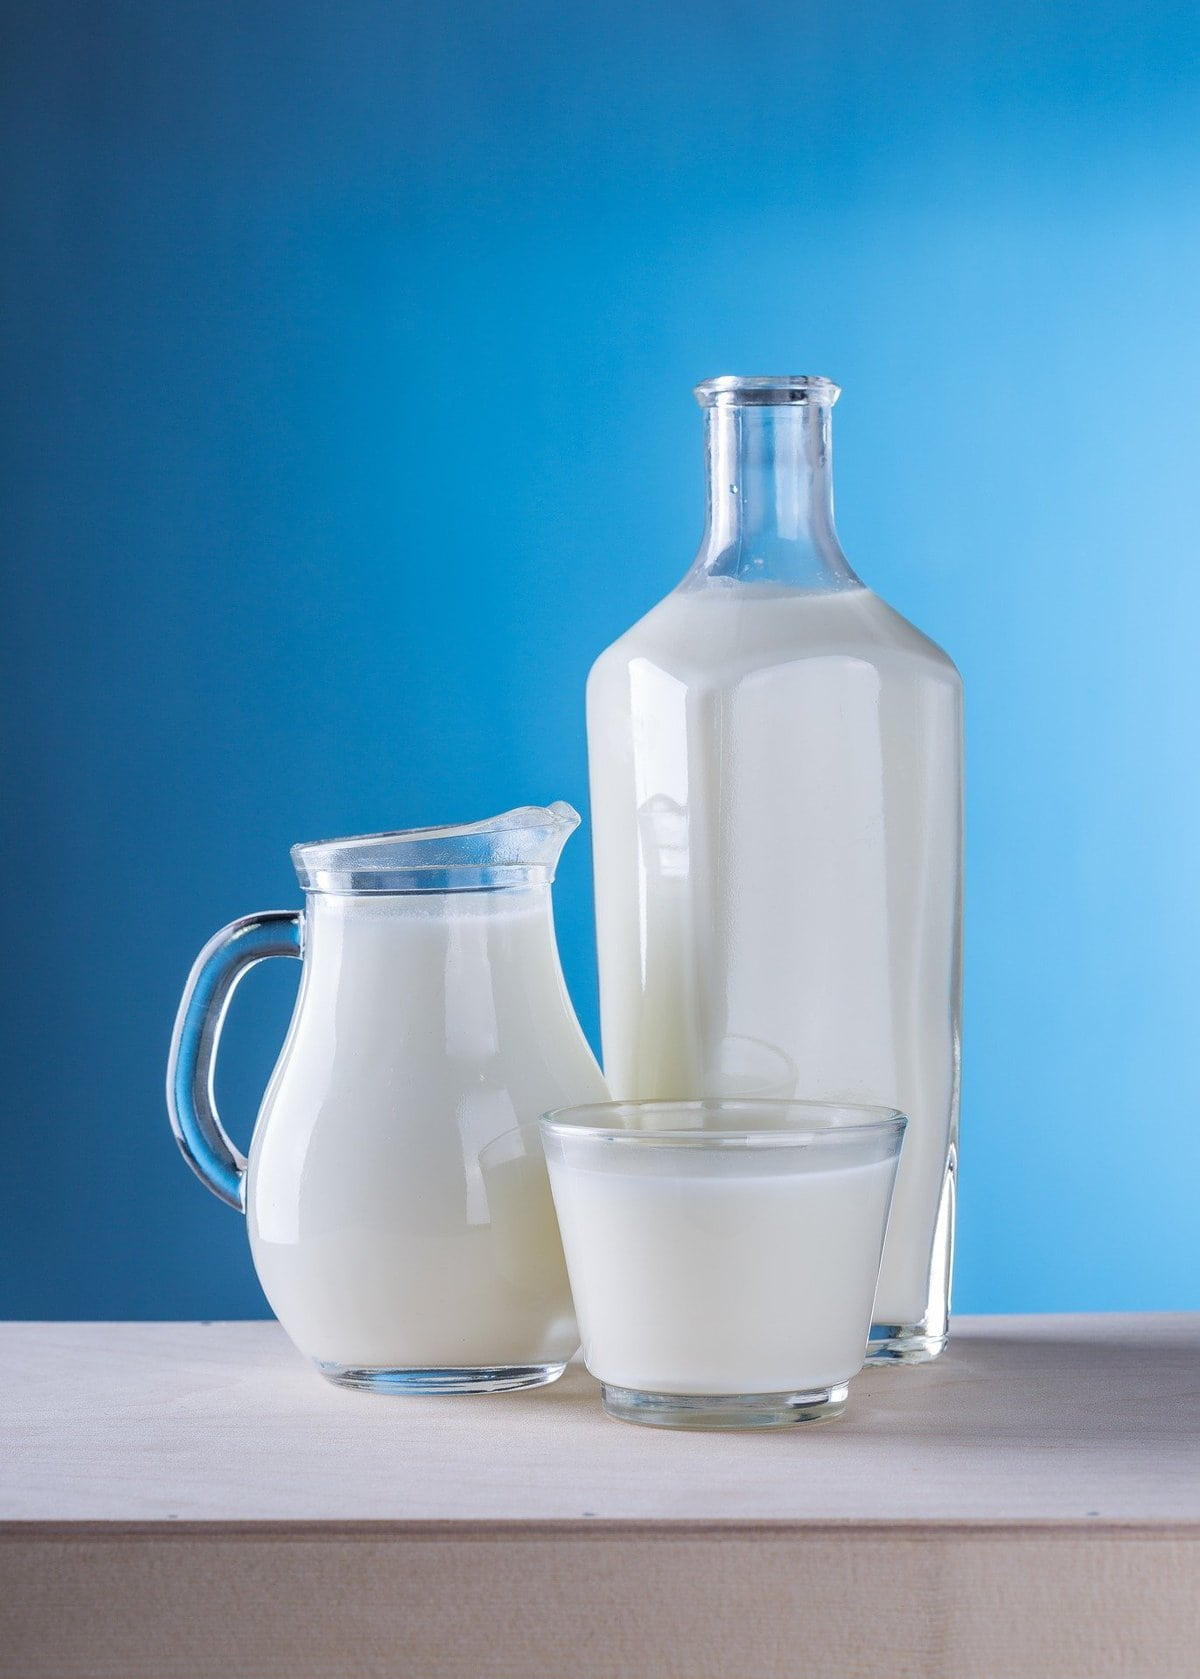 The Best Milk Alternatives for Your Entire Household